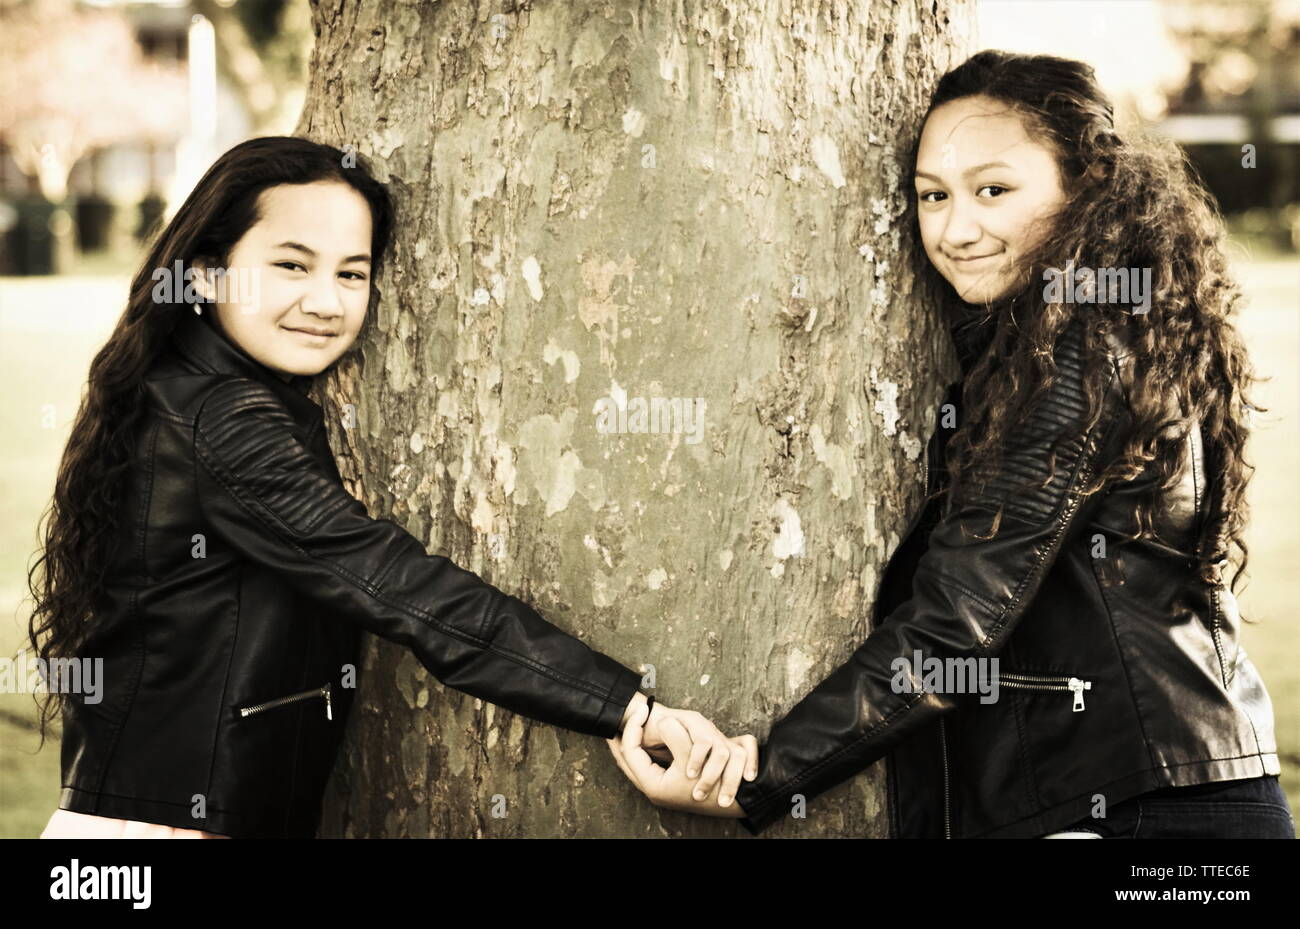 Two Maori sisters holding hands hugging a tree outdoors in the day - Stock Image